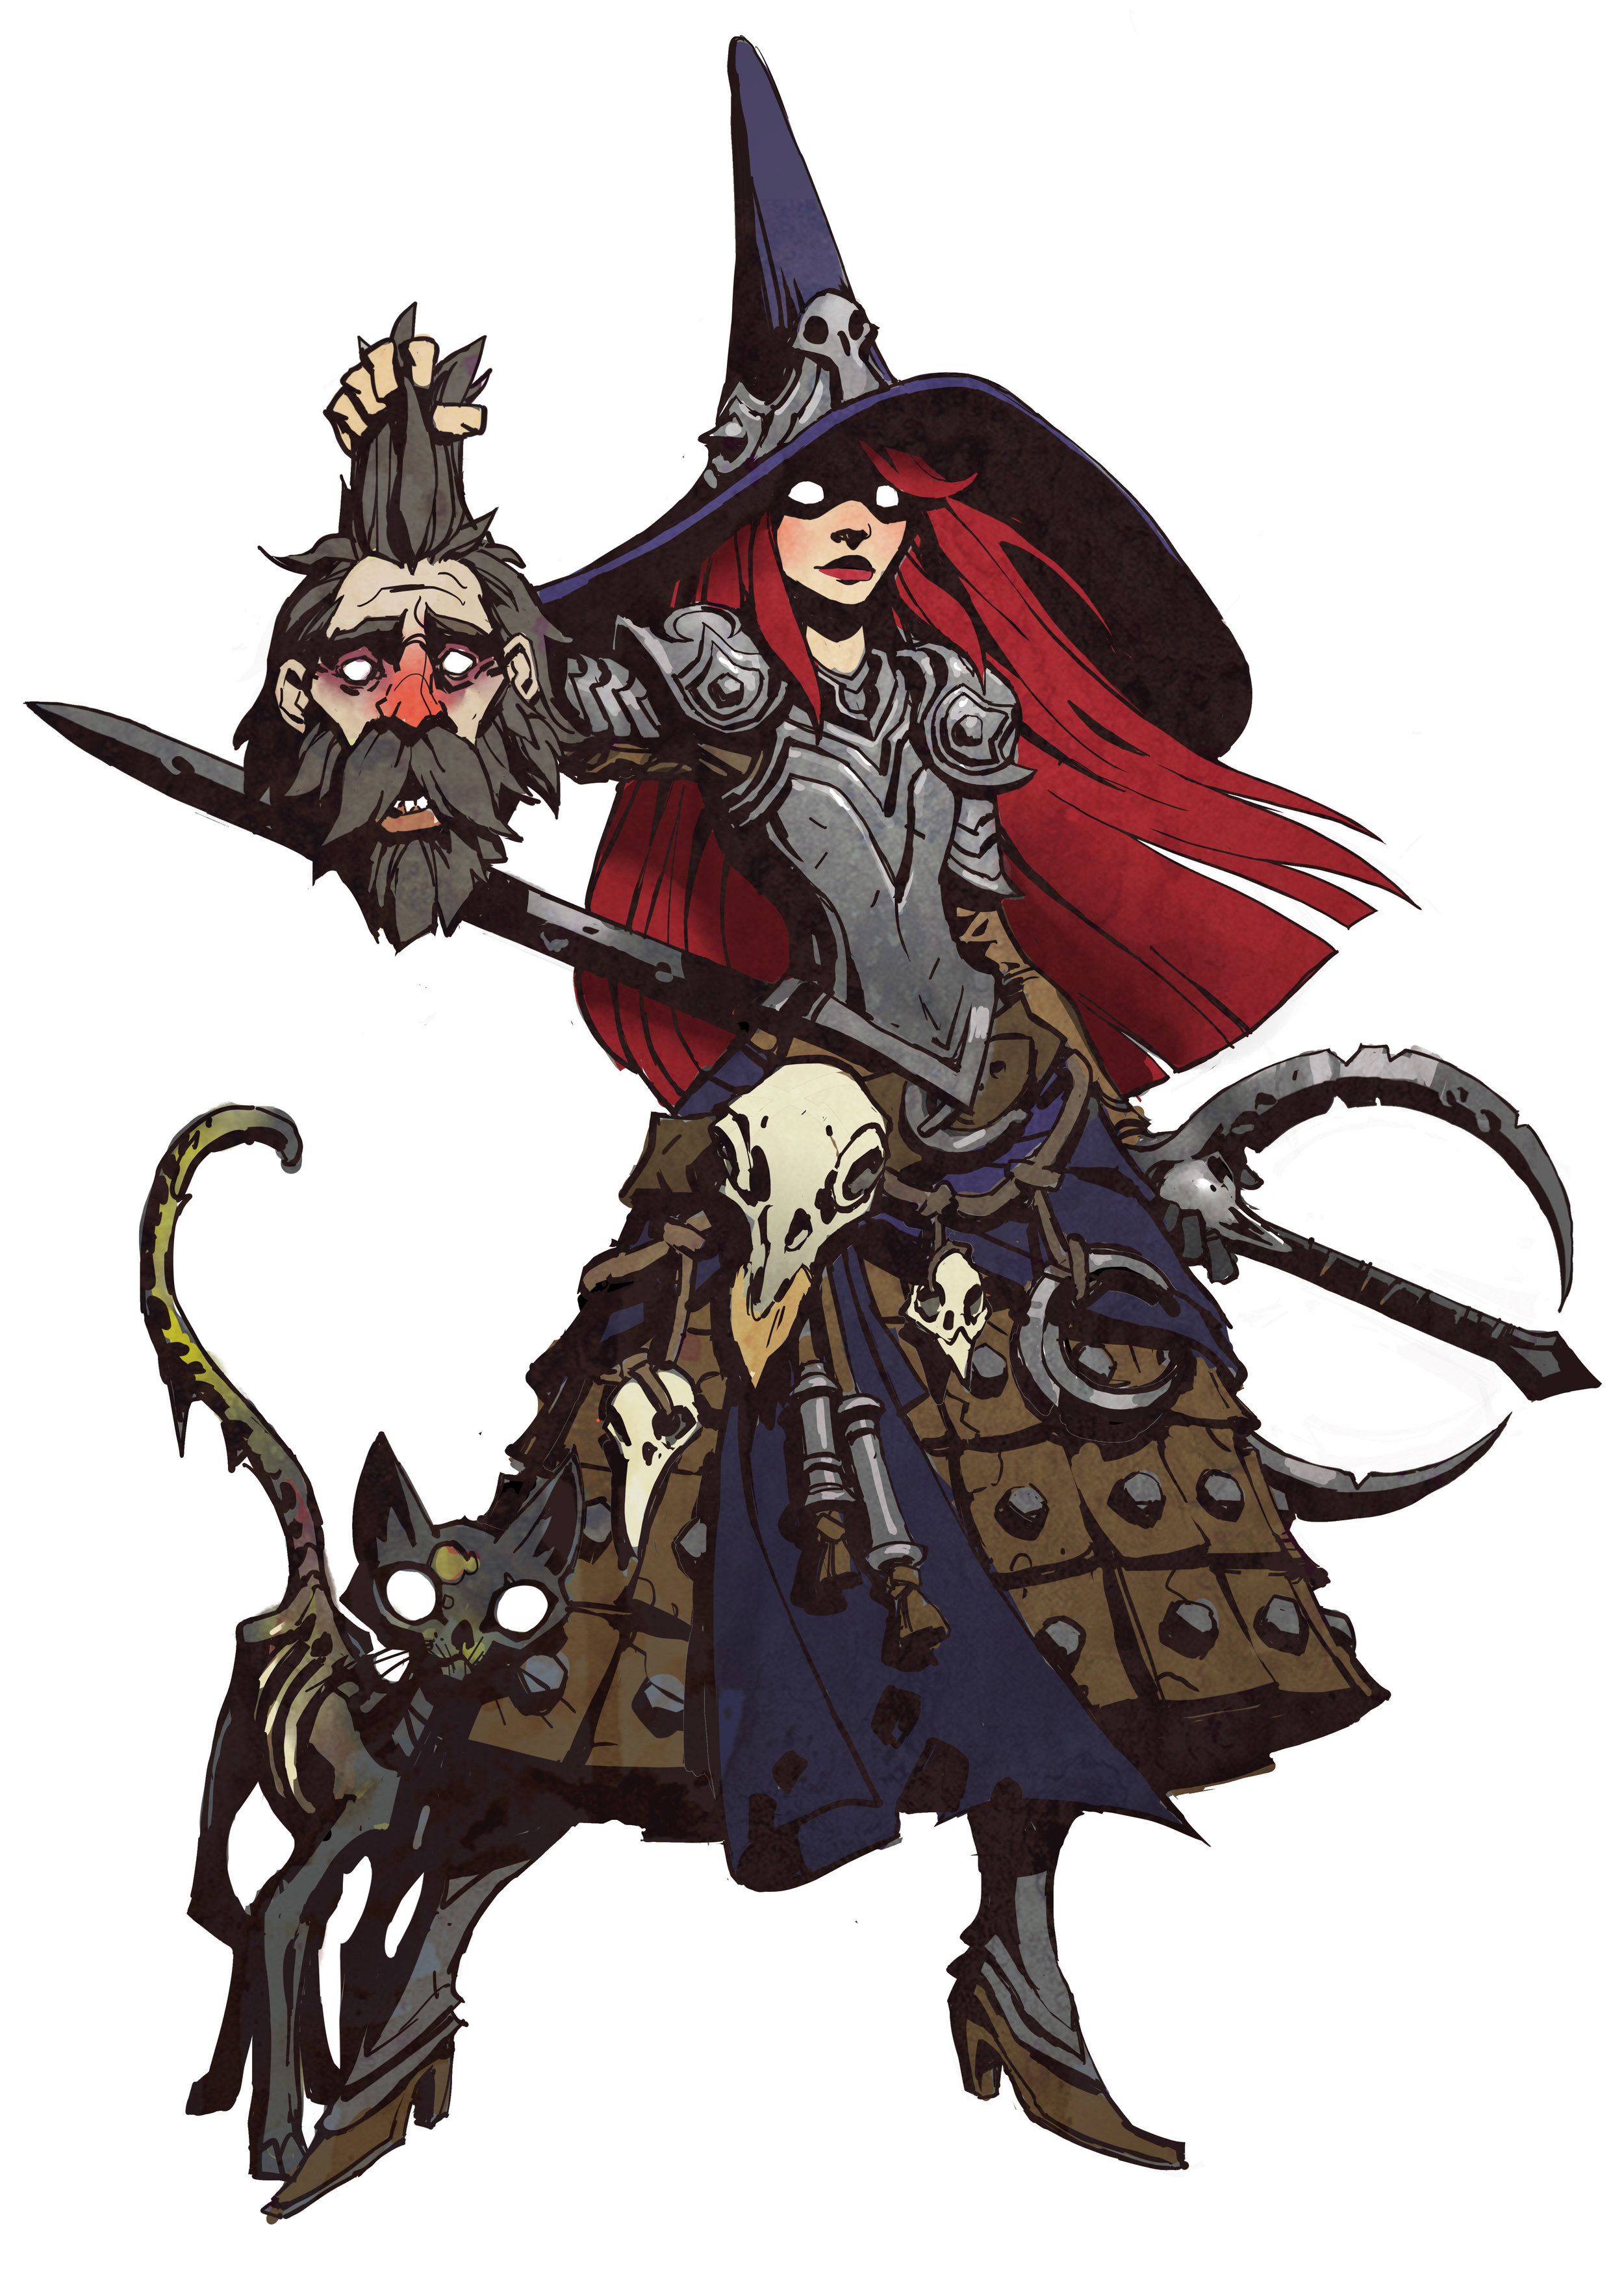 CONJURER FAQ - Q: Can I occupy the same space as my Ghost Knights? Do my ghost knights hurt my teammates?A: Yes the Conjurer can stand on Ghost Knights, and so can her teammates. They do not cause team damage, and do not disappear. Q: If the Conjurer dies, do the Ghost Knights die too?A: Yes.Q: When can the Ghost Knights move?A: When they are summoned, they can immediately move. Ghost Knights also have their own movement on the summoning player's turn, and don't require an action to move them.